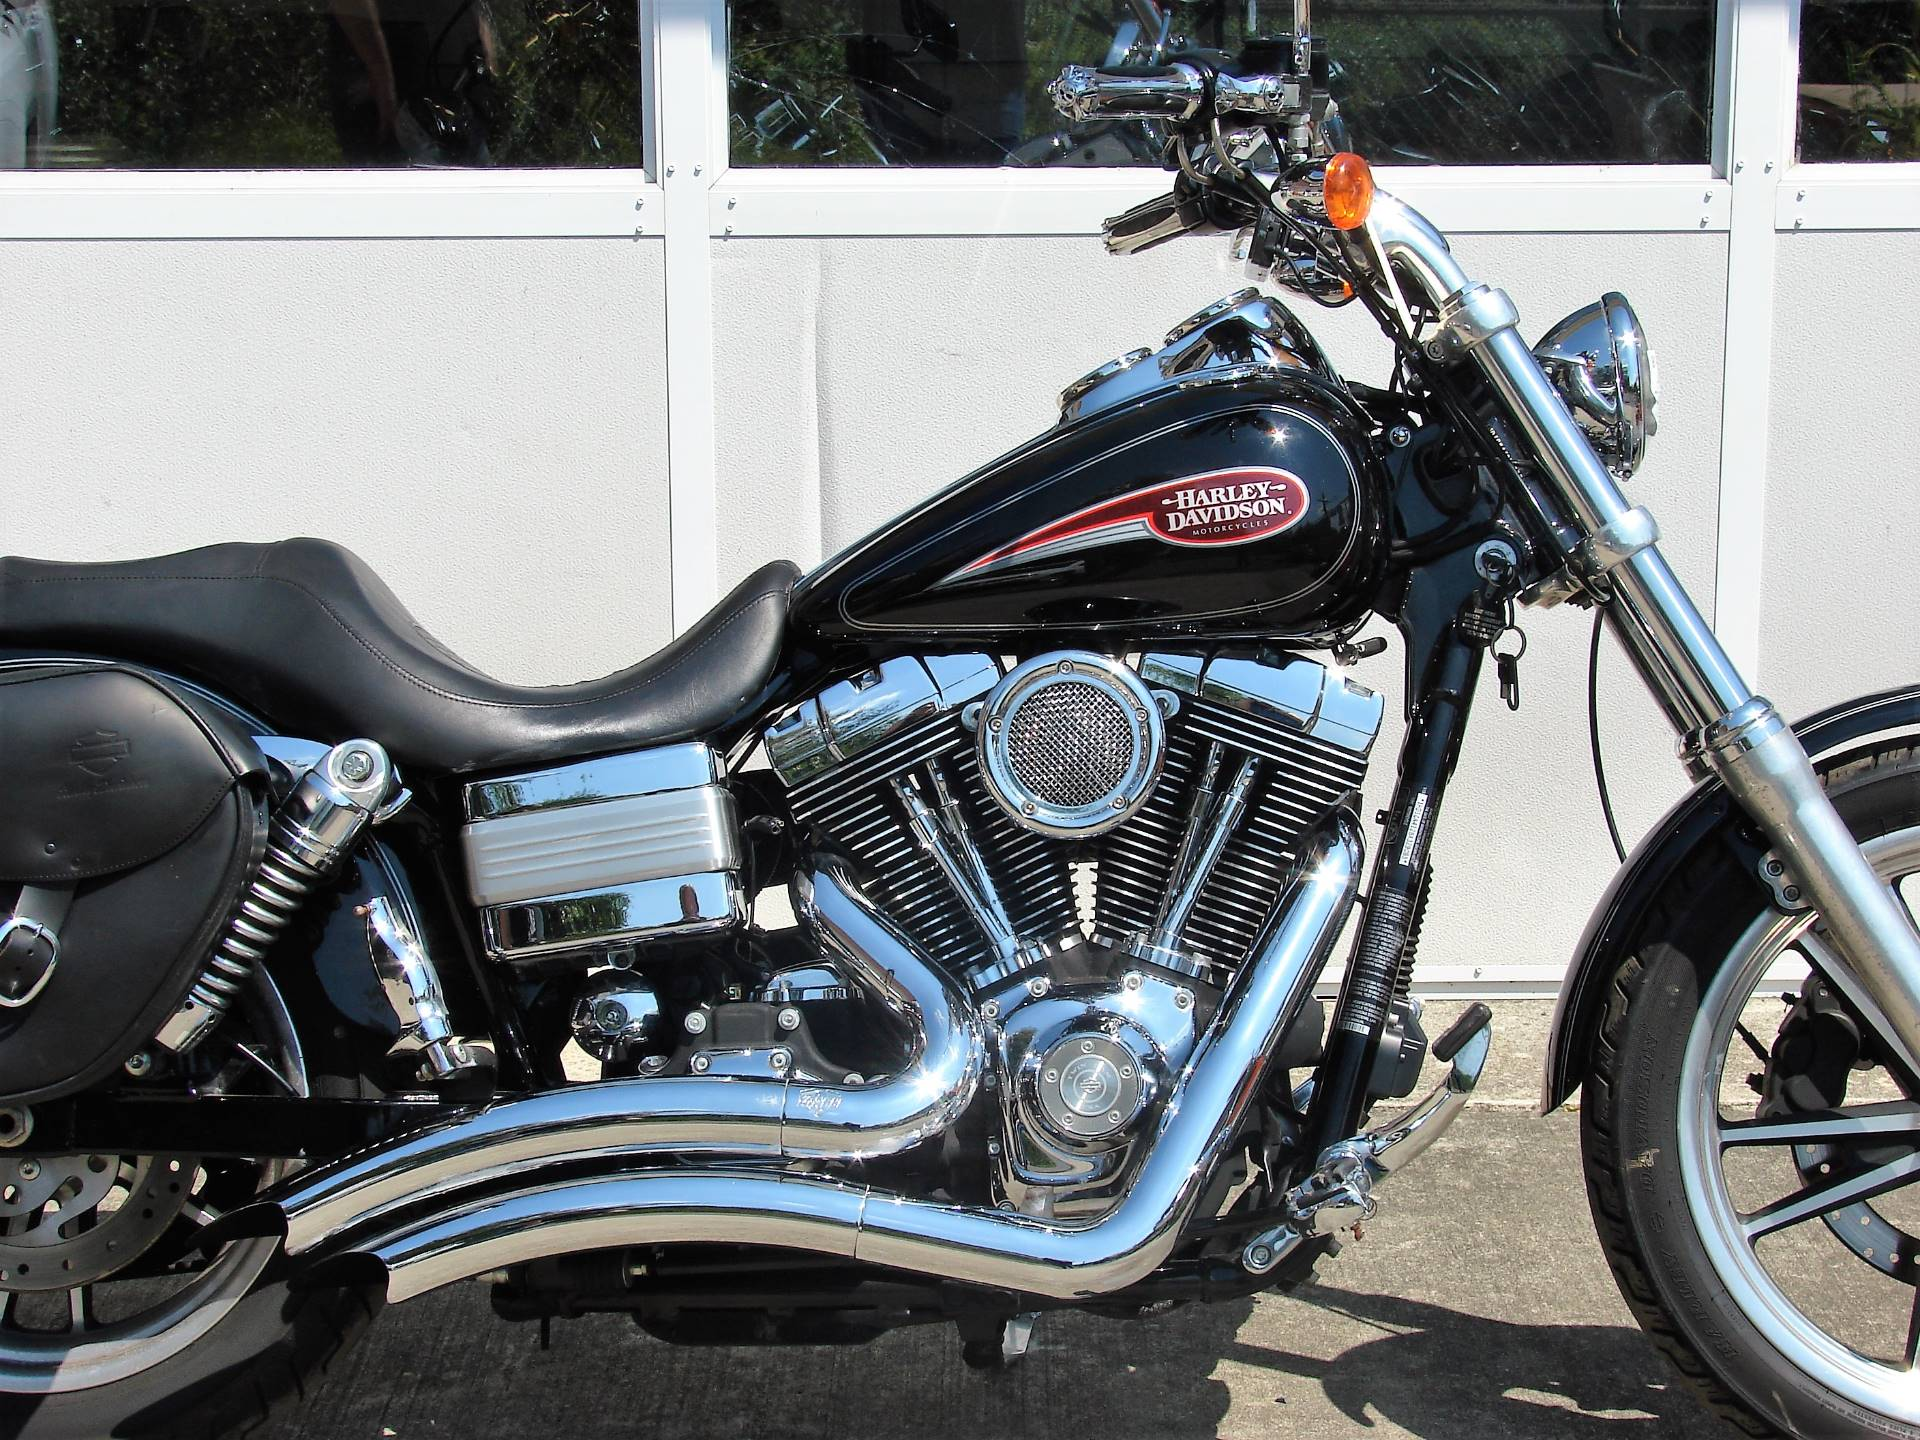 2008 Harley-Davidson FXDL Dyna Low Rider in Williamstown, New Jersey - Photo 2